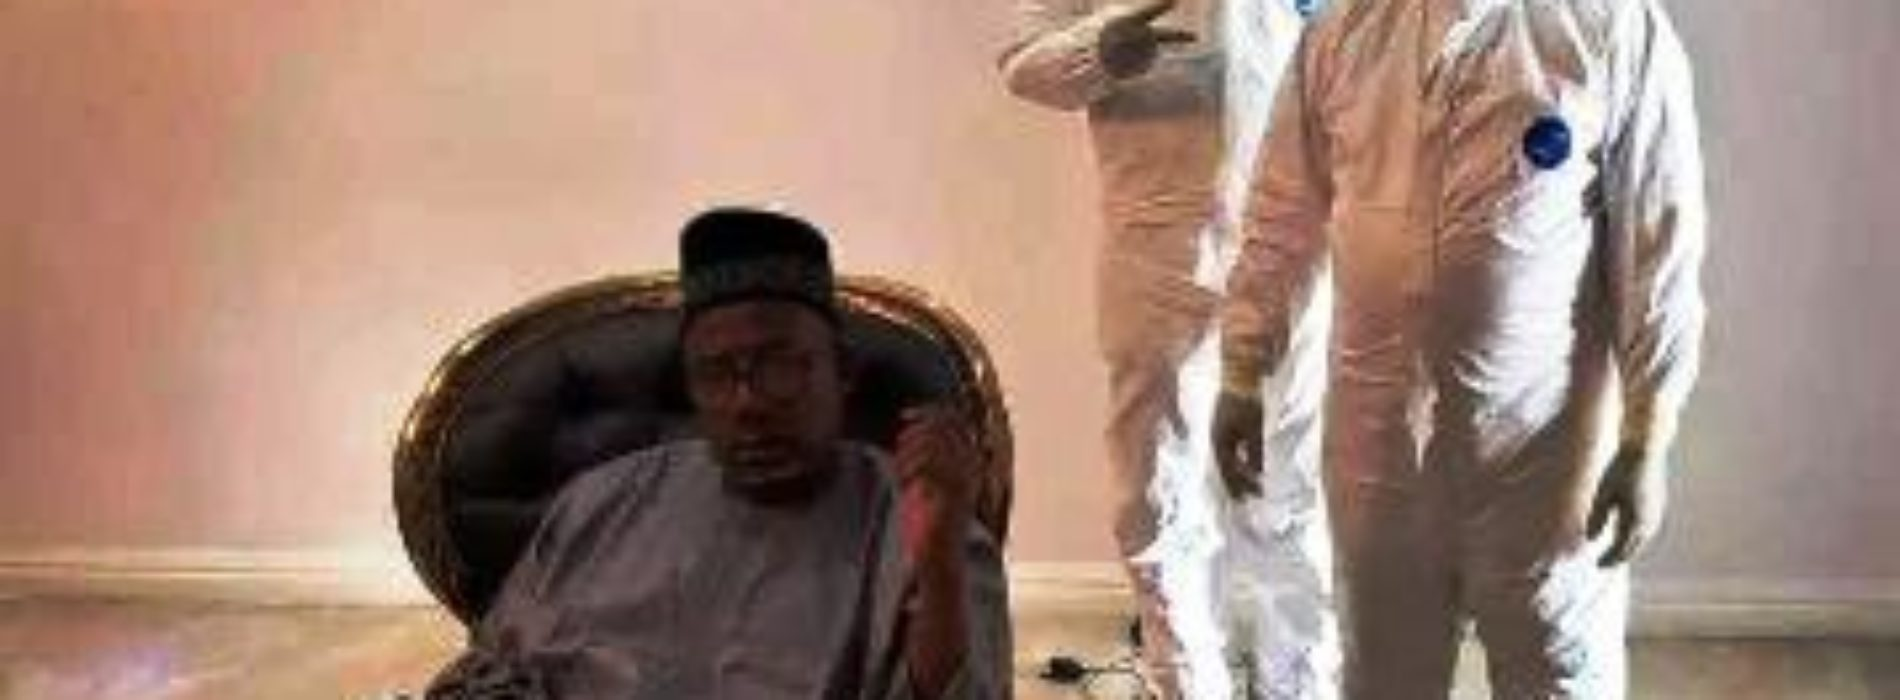 Bauchi governor orders treatment of COVID-19 patients with chloroquine, zithromax